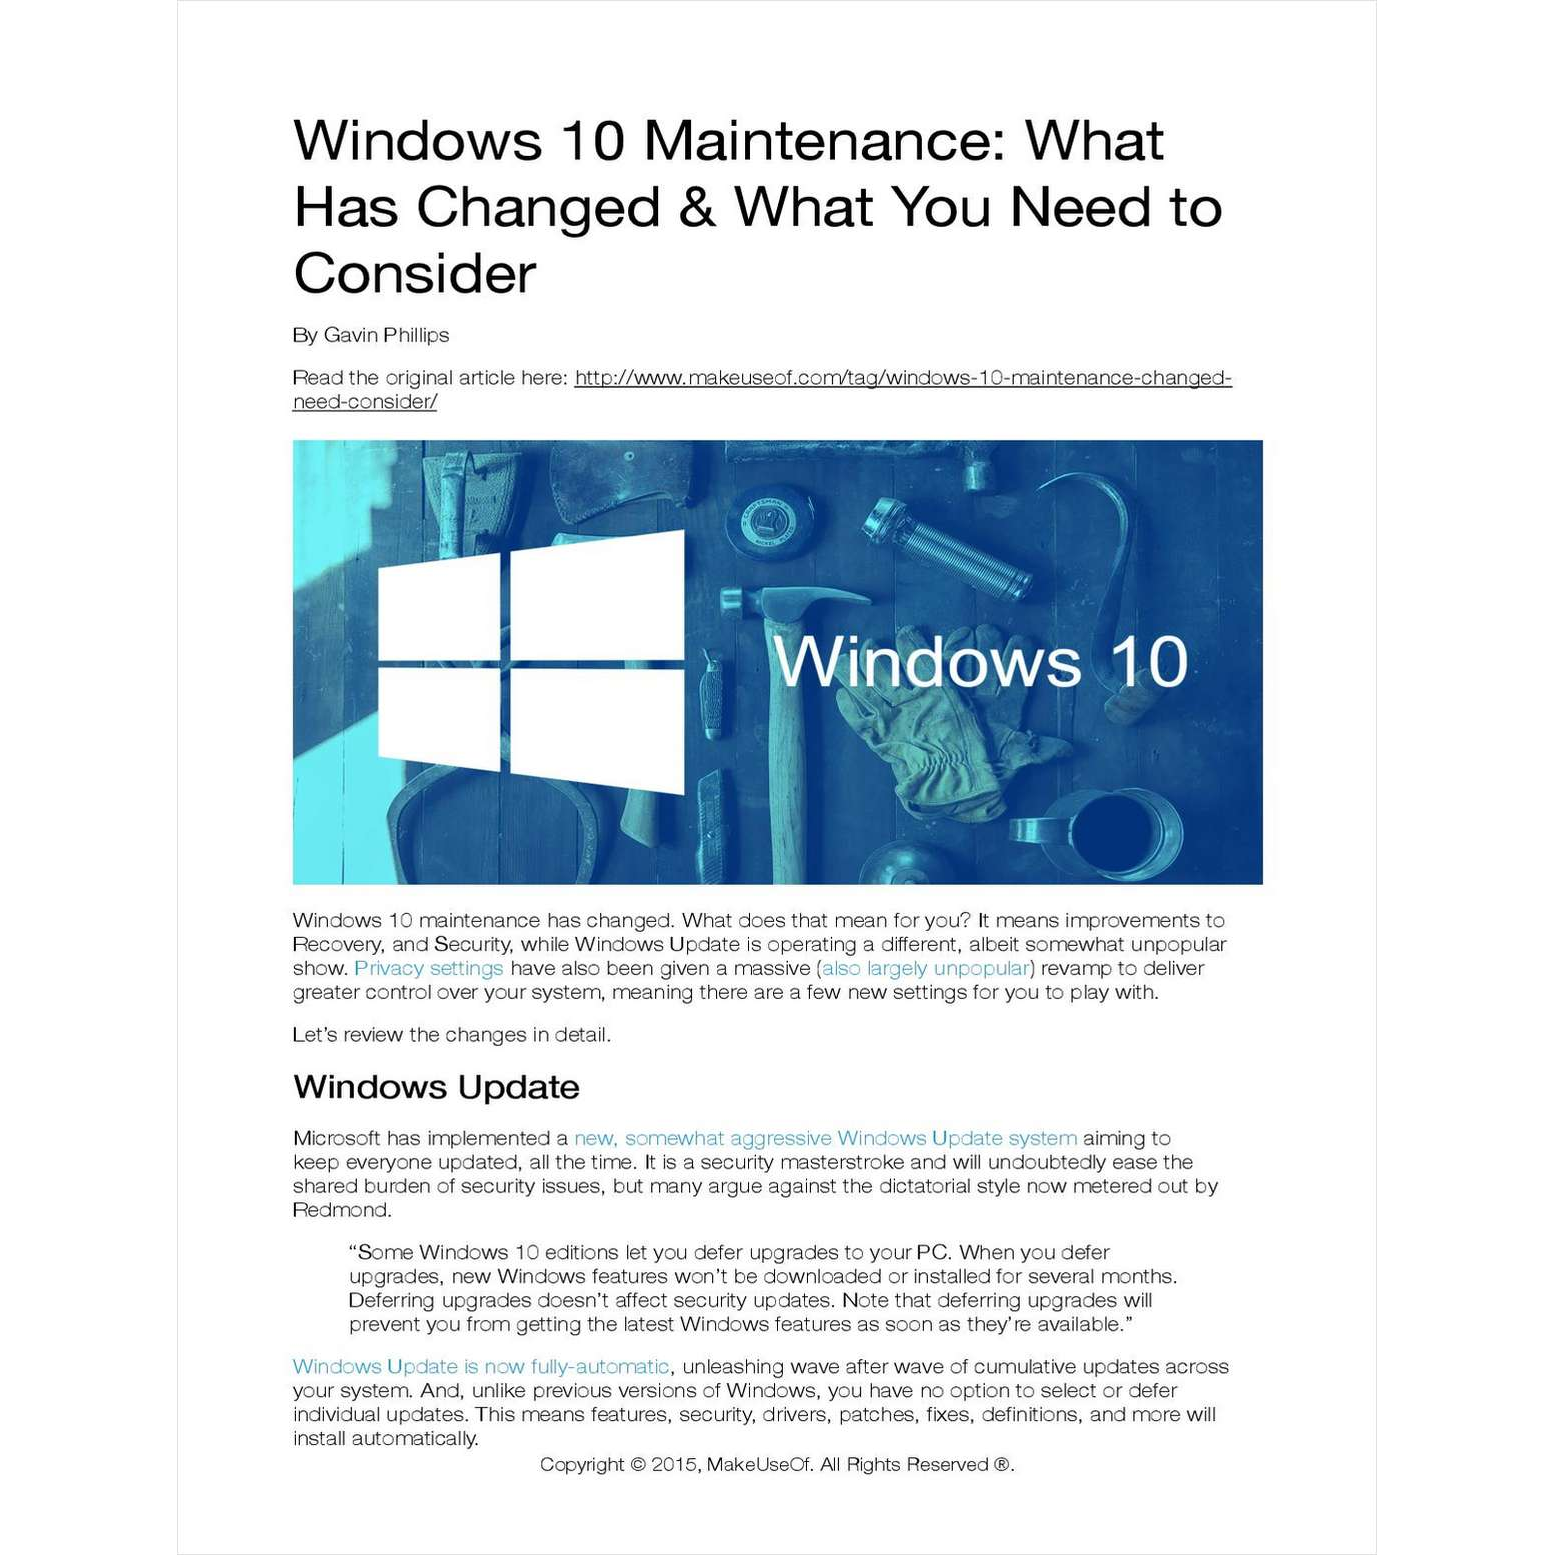 Windows 10 Maintenance: What Has Changed and What You Need to Consider Screenshot